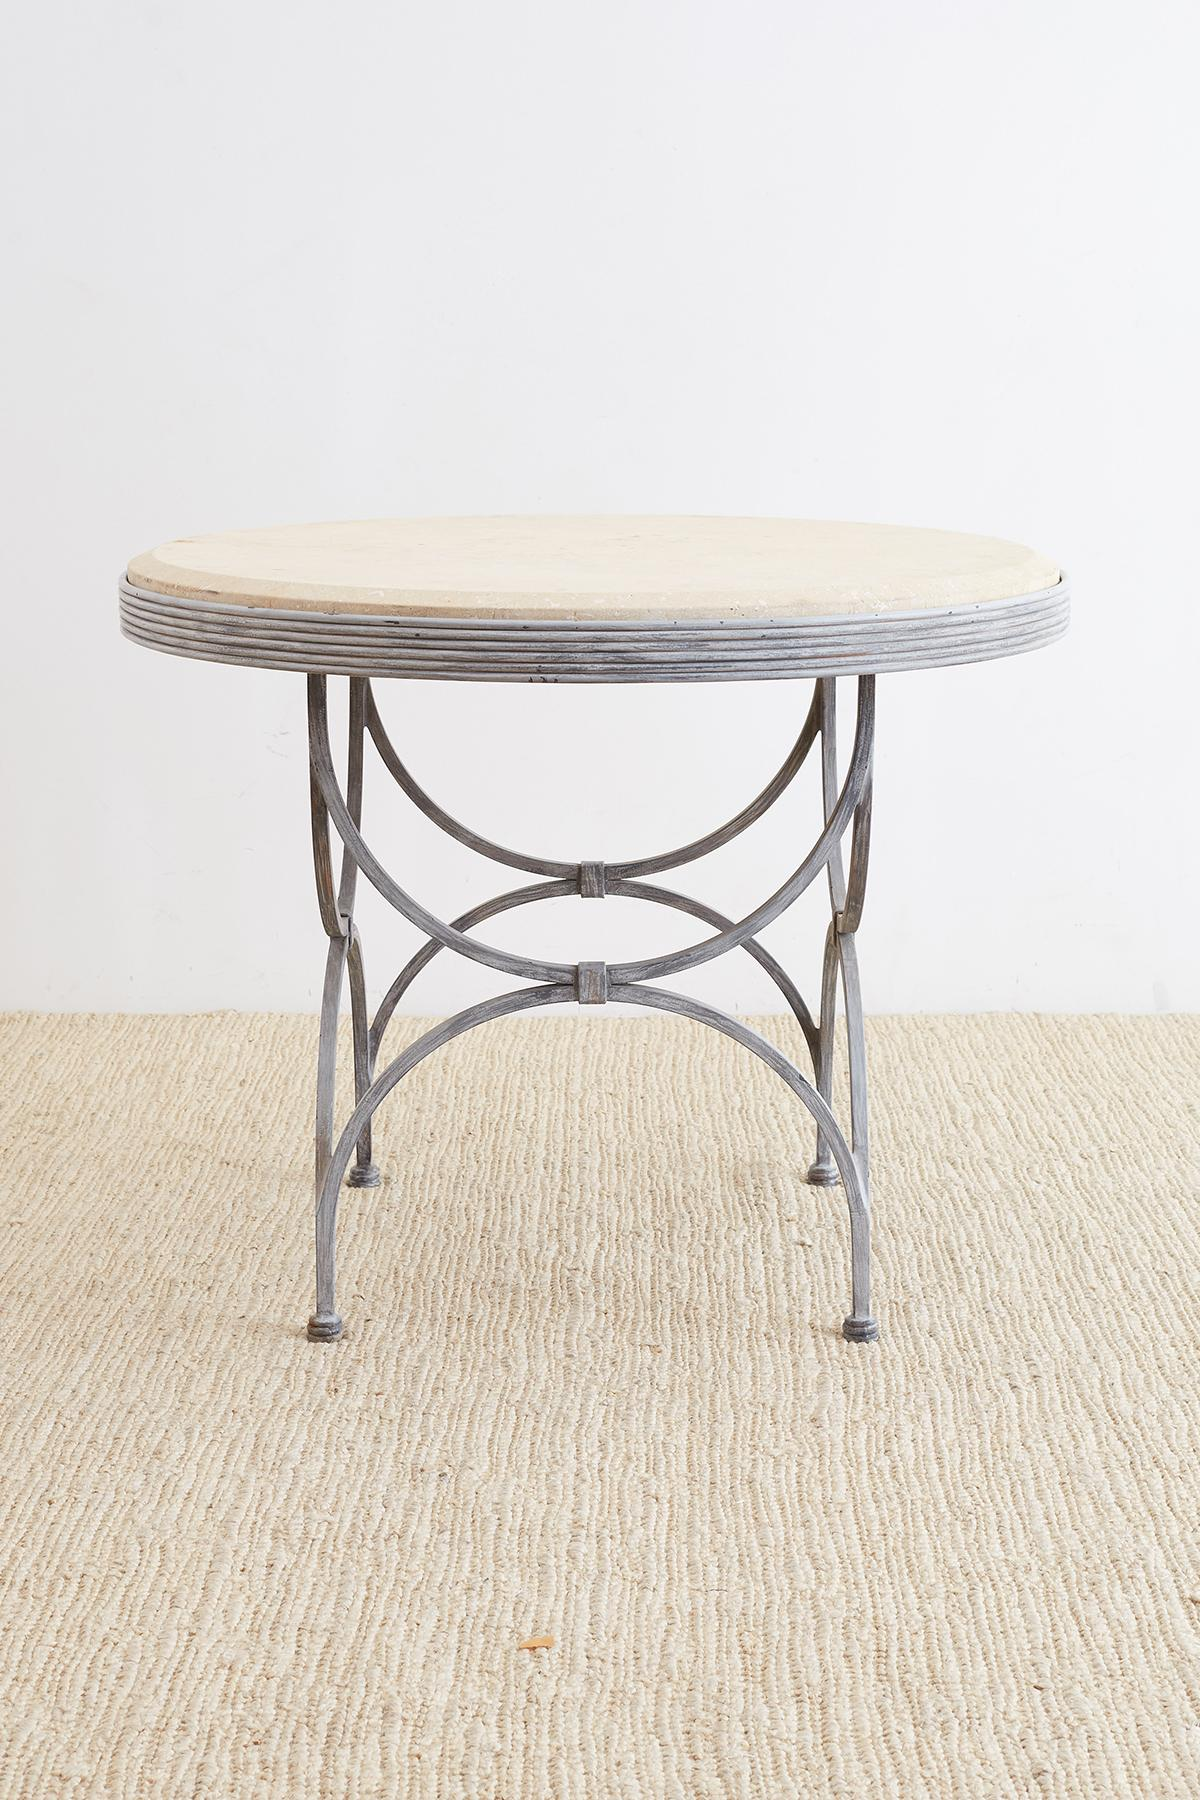 Captivating Extraordinary Iron And Stone Patio Garden Table Made In The Neoclassical  Taste. Features A Thick